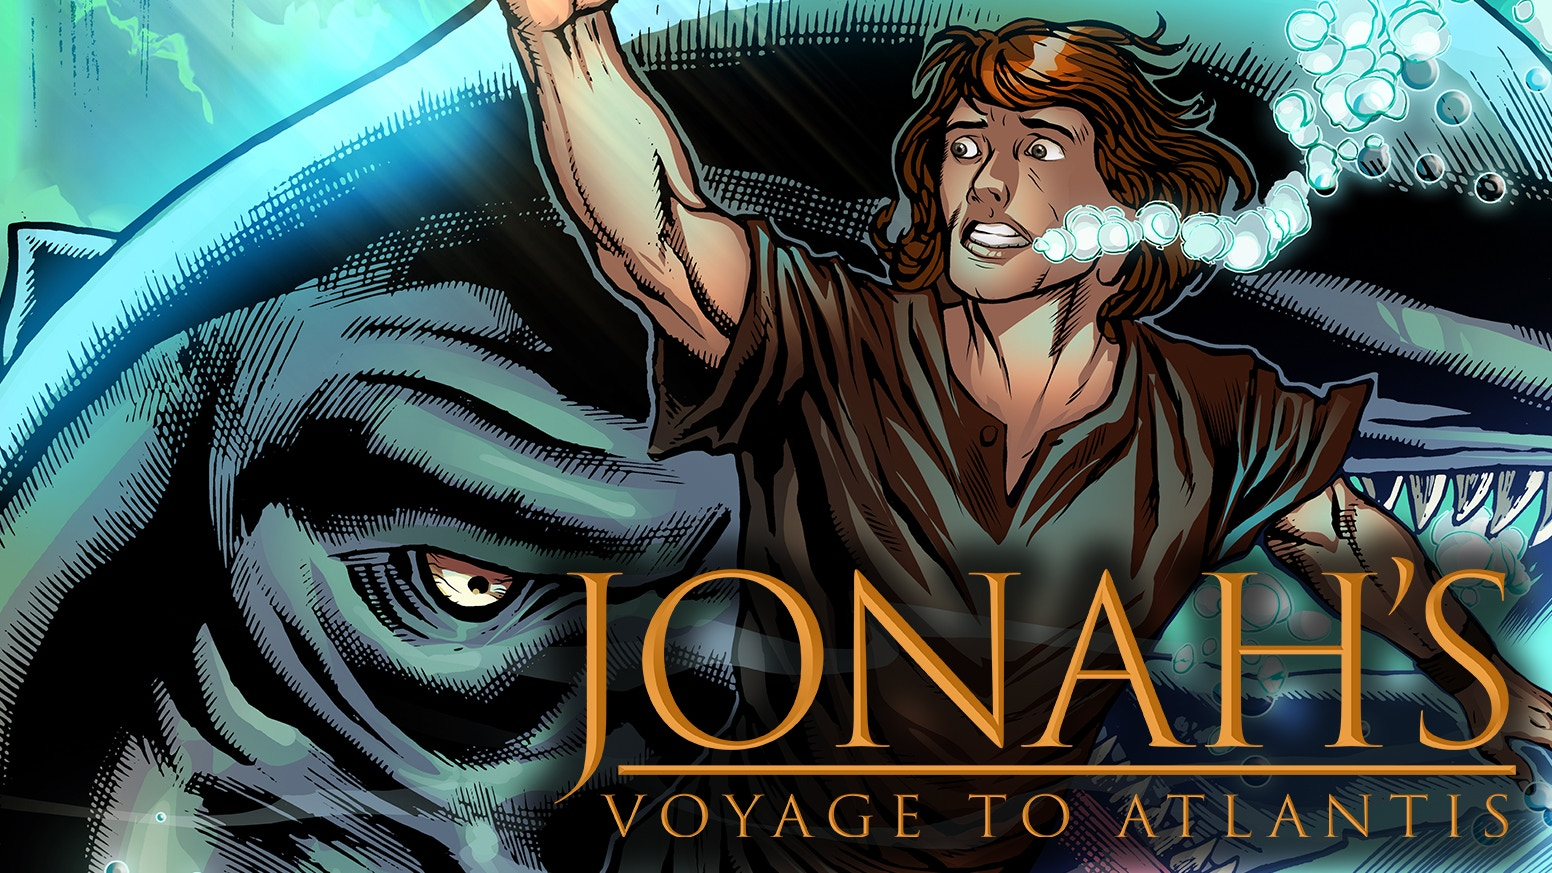 A comic book inspired by ancient legends, myths and J.R.R. Tolkien's translation of Jonah.